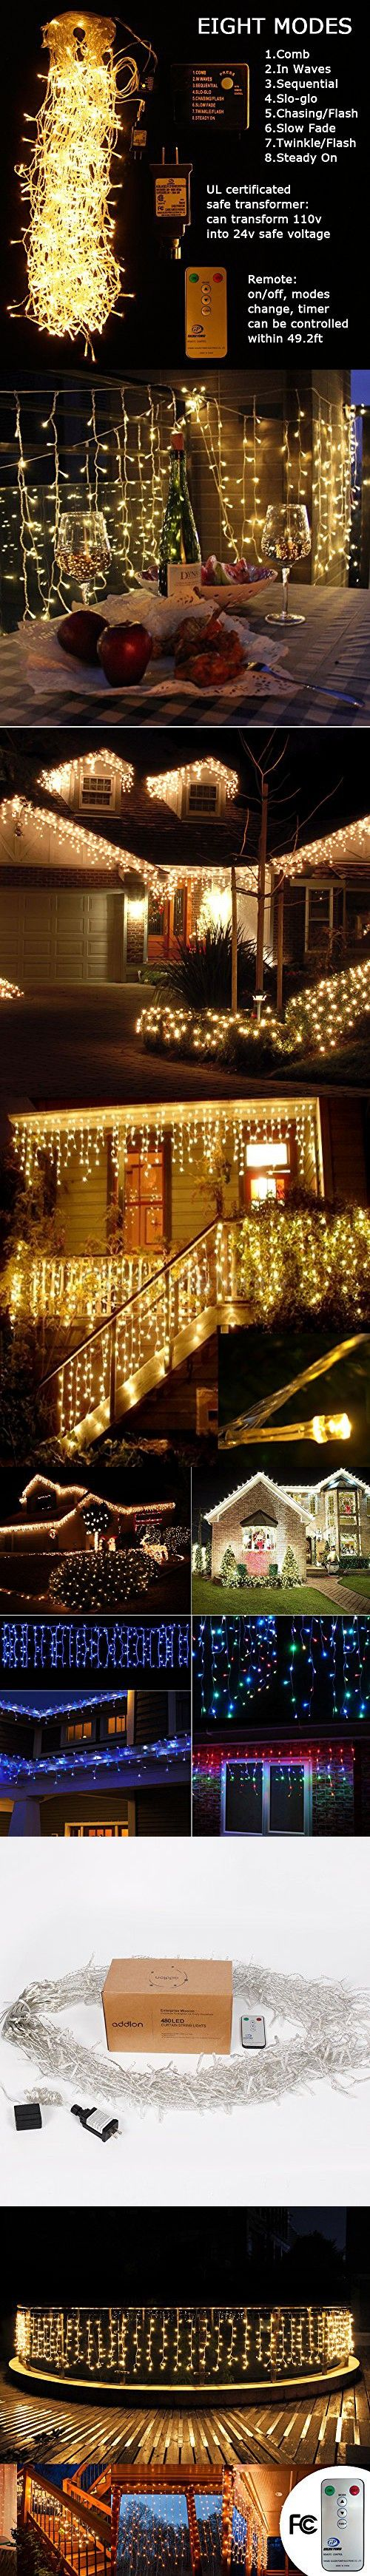 Christmas 33ftx3ft 480 Leds Curtain Icicle lights, Addlon 8 modes with Remote Window fairy Christmas lights,UL certificated Warm White string fairy lights for Home,Party, Outdoor, Wedding Backdrops